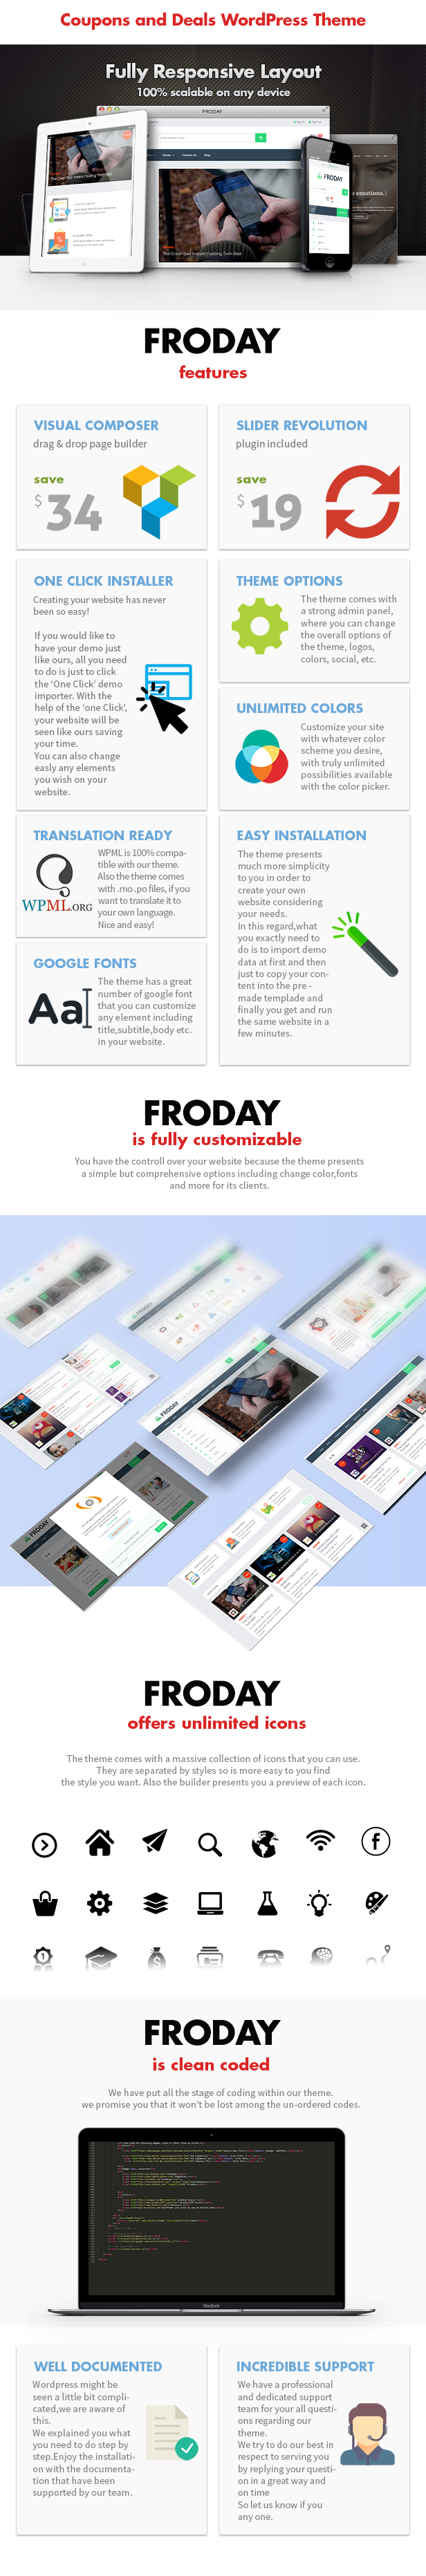 Froday – Coupons and Deals WordPress Theme - 3